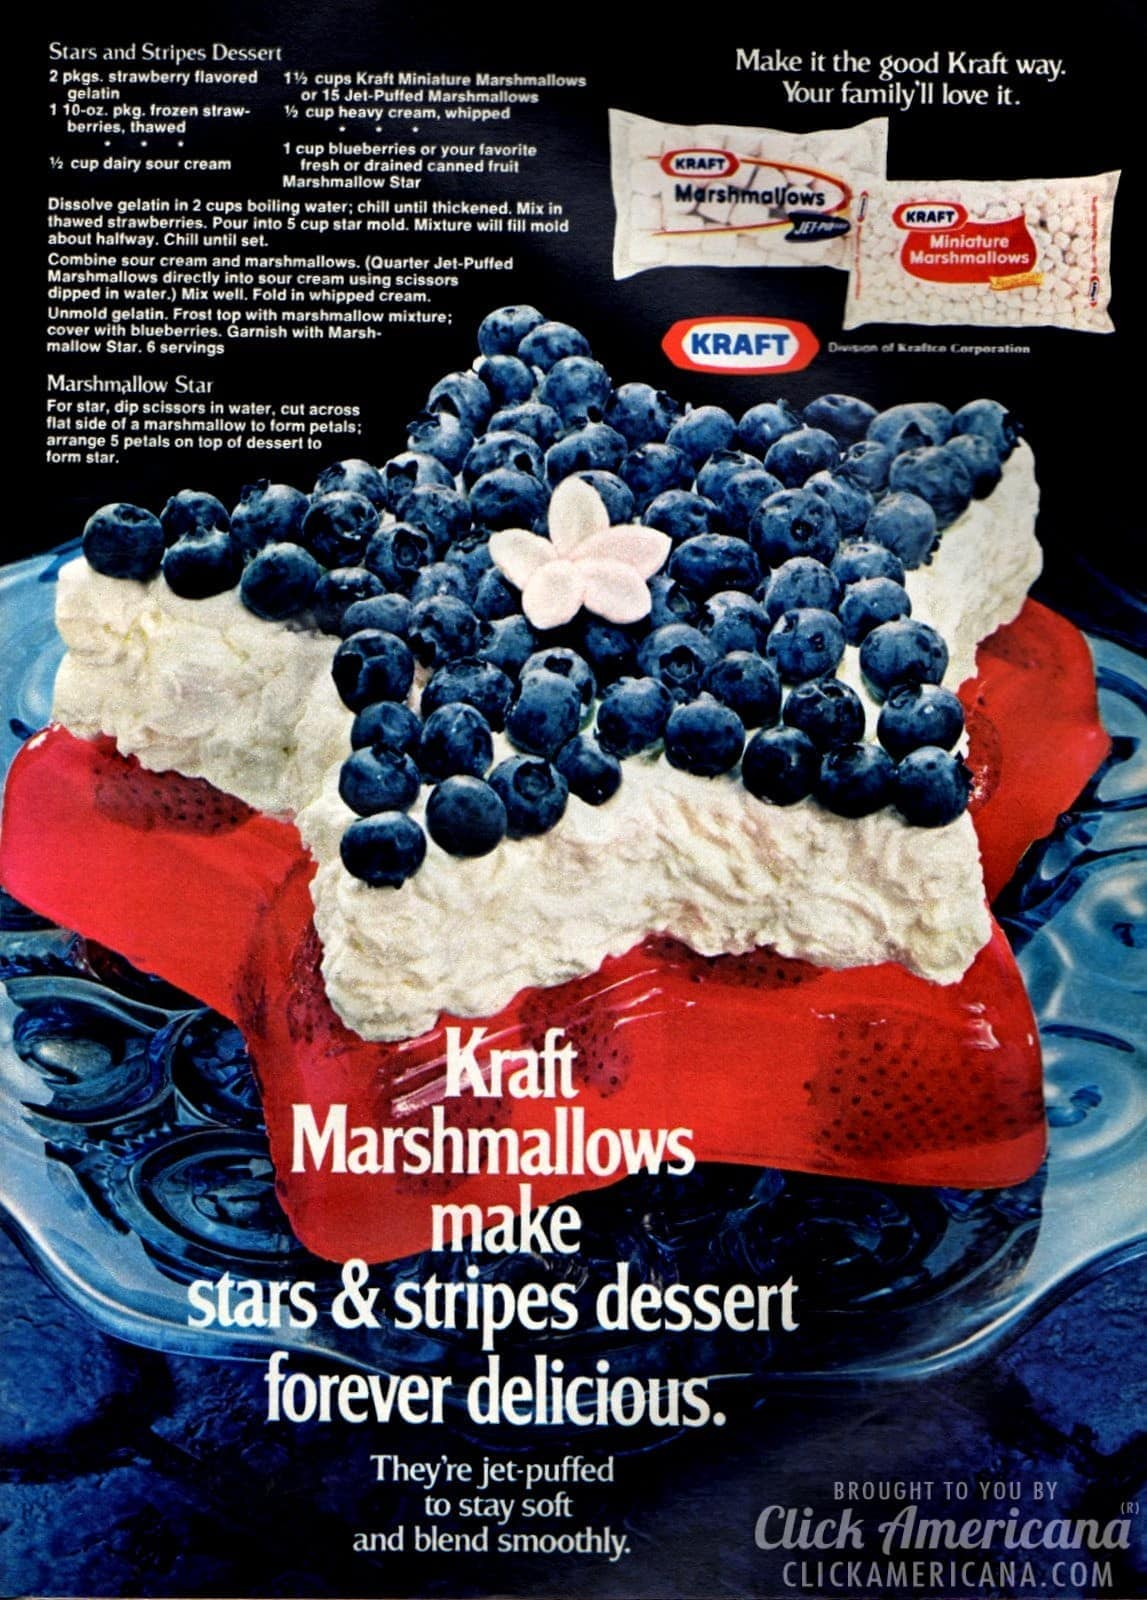 Stars & stripes dessert, with gelatin & marshmallows (1972)